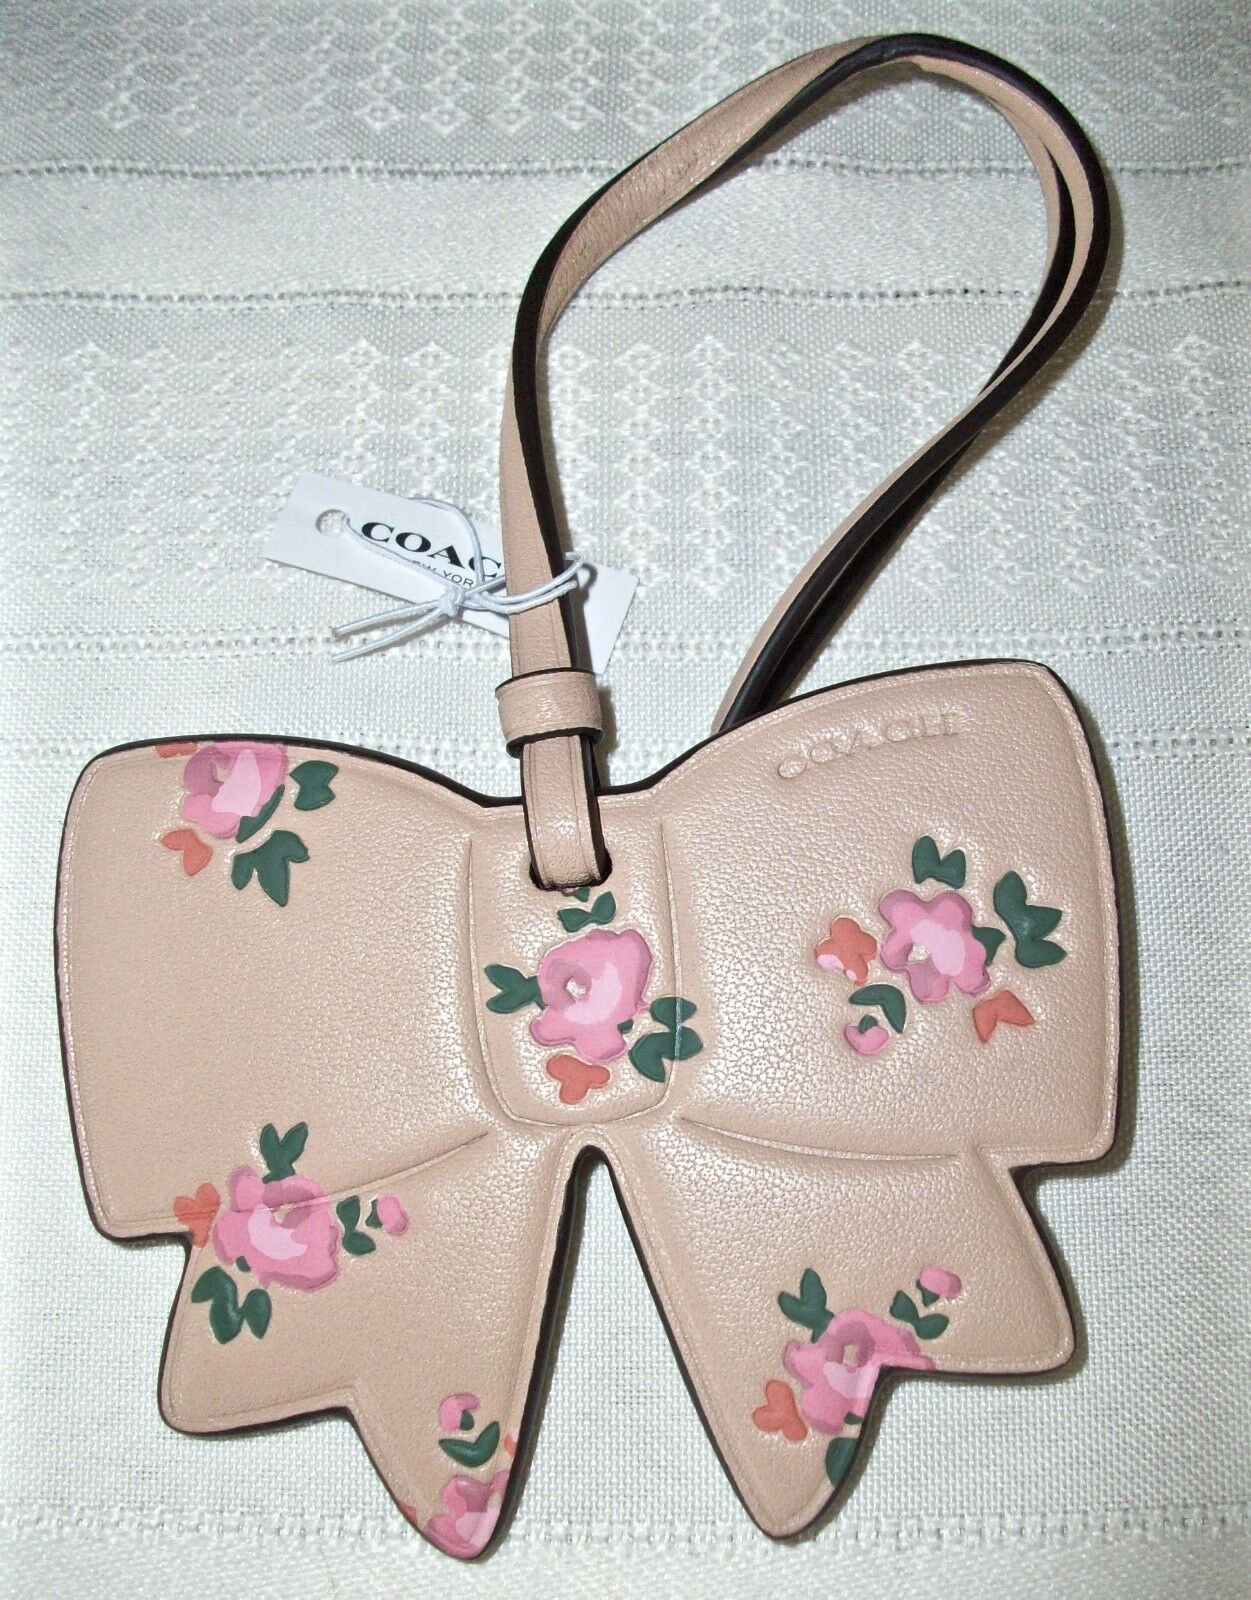 Coach Boxed Leather Printed Floral Bow Charm Ornament 27417 Beechwood image 4